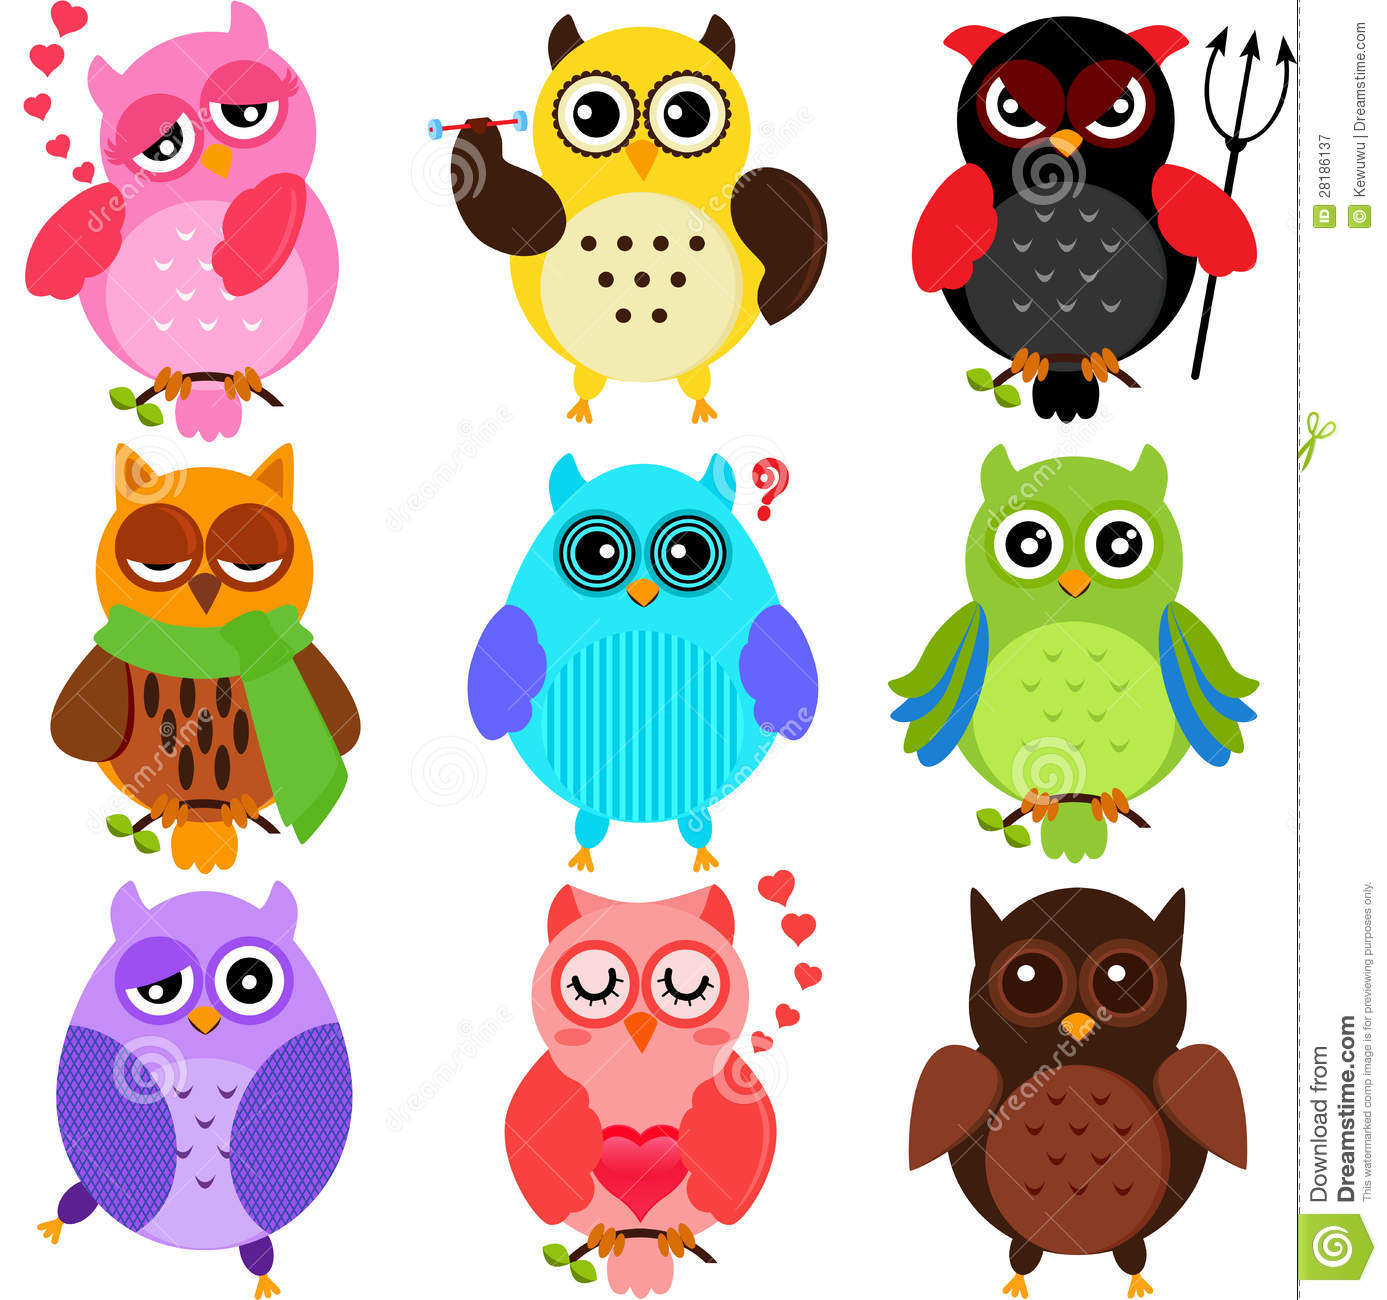 Colorful Owl Clipart Colorful Owls Royalty Free